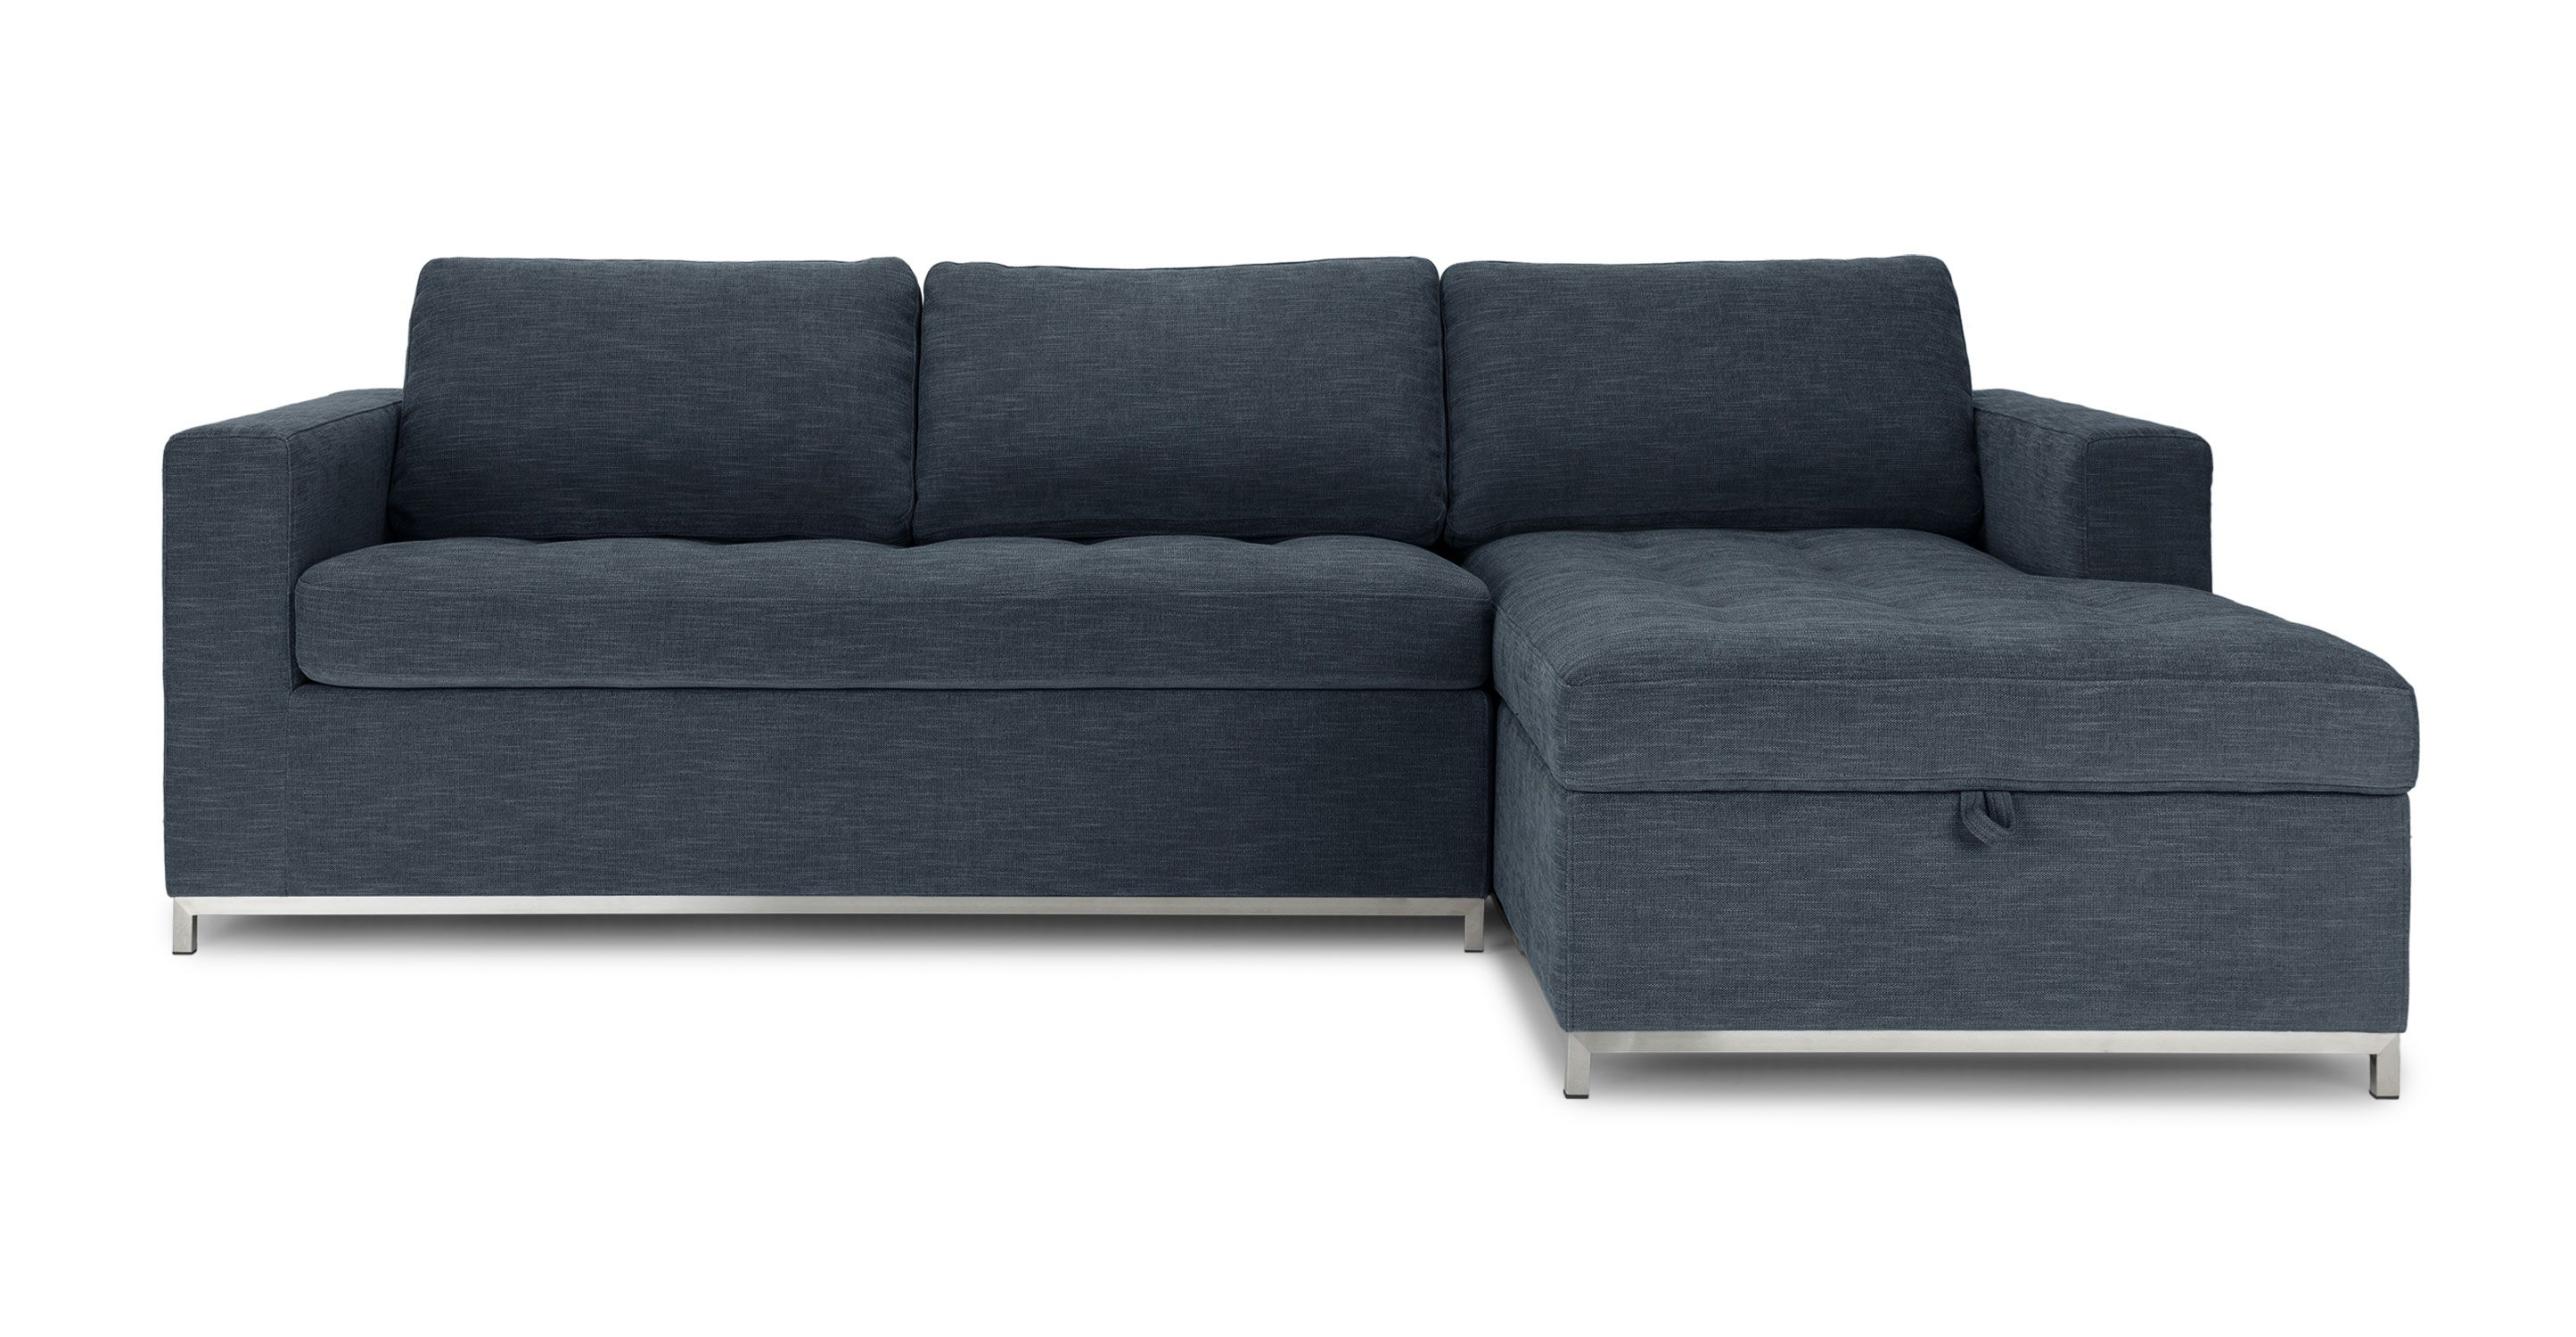 grey sectionals seating for with sofa large chaise size modern leather sale living small room of sofas know velvet oversized extra contemporary things full sectional you blue to microfiber designer sleeper need